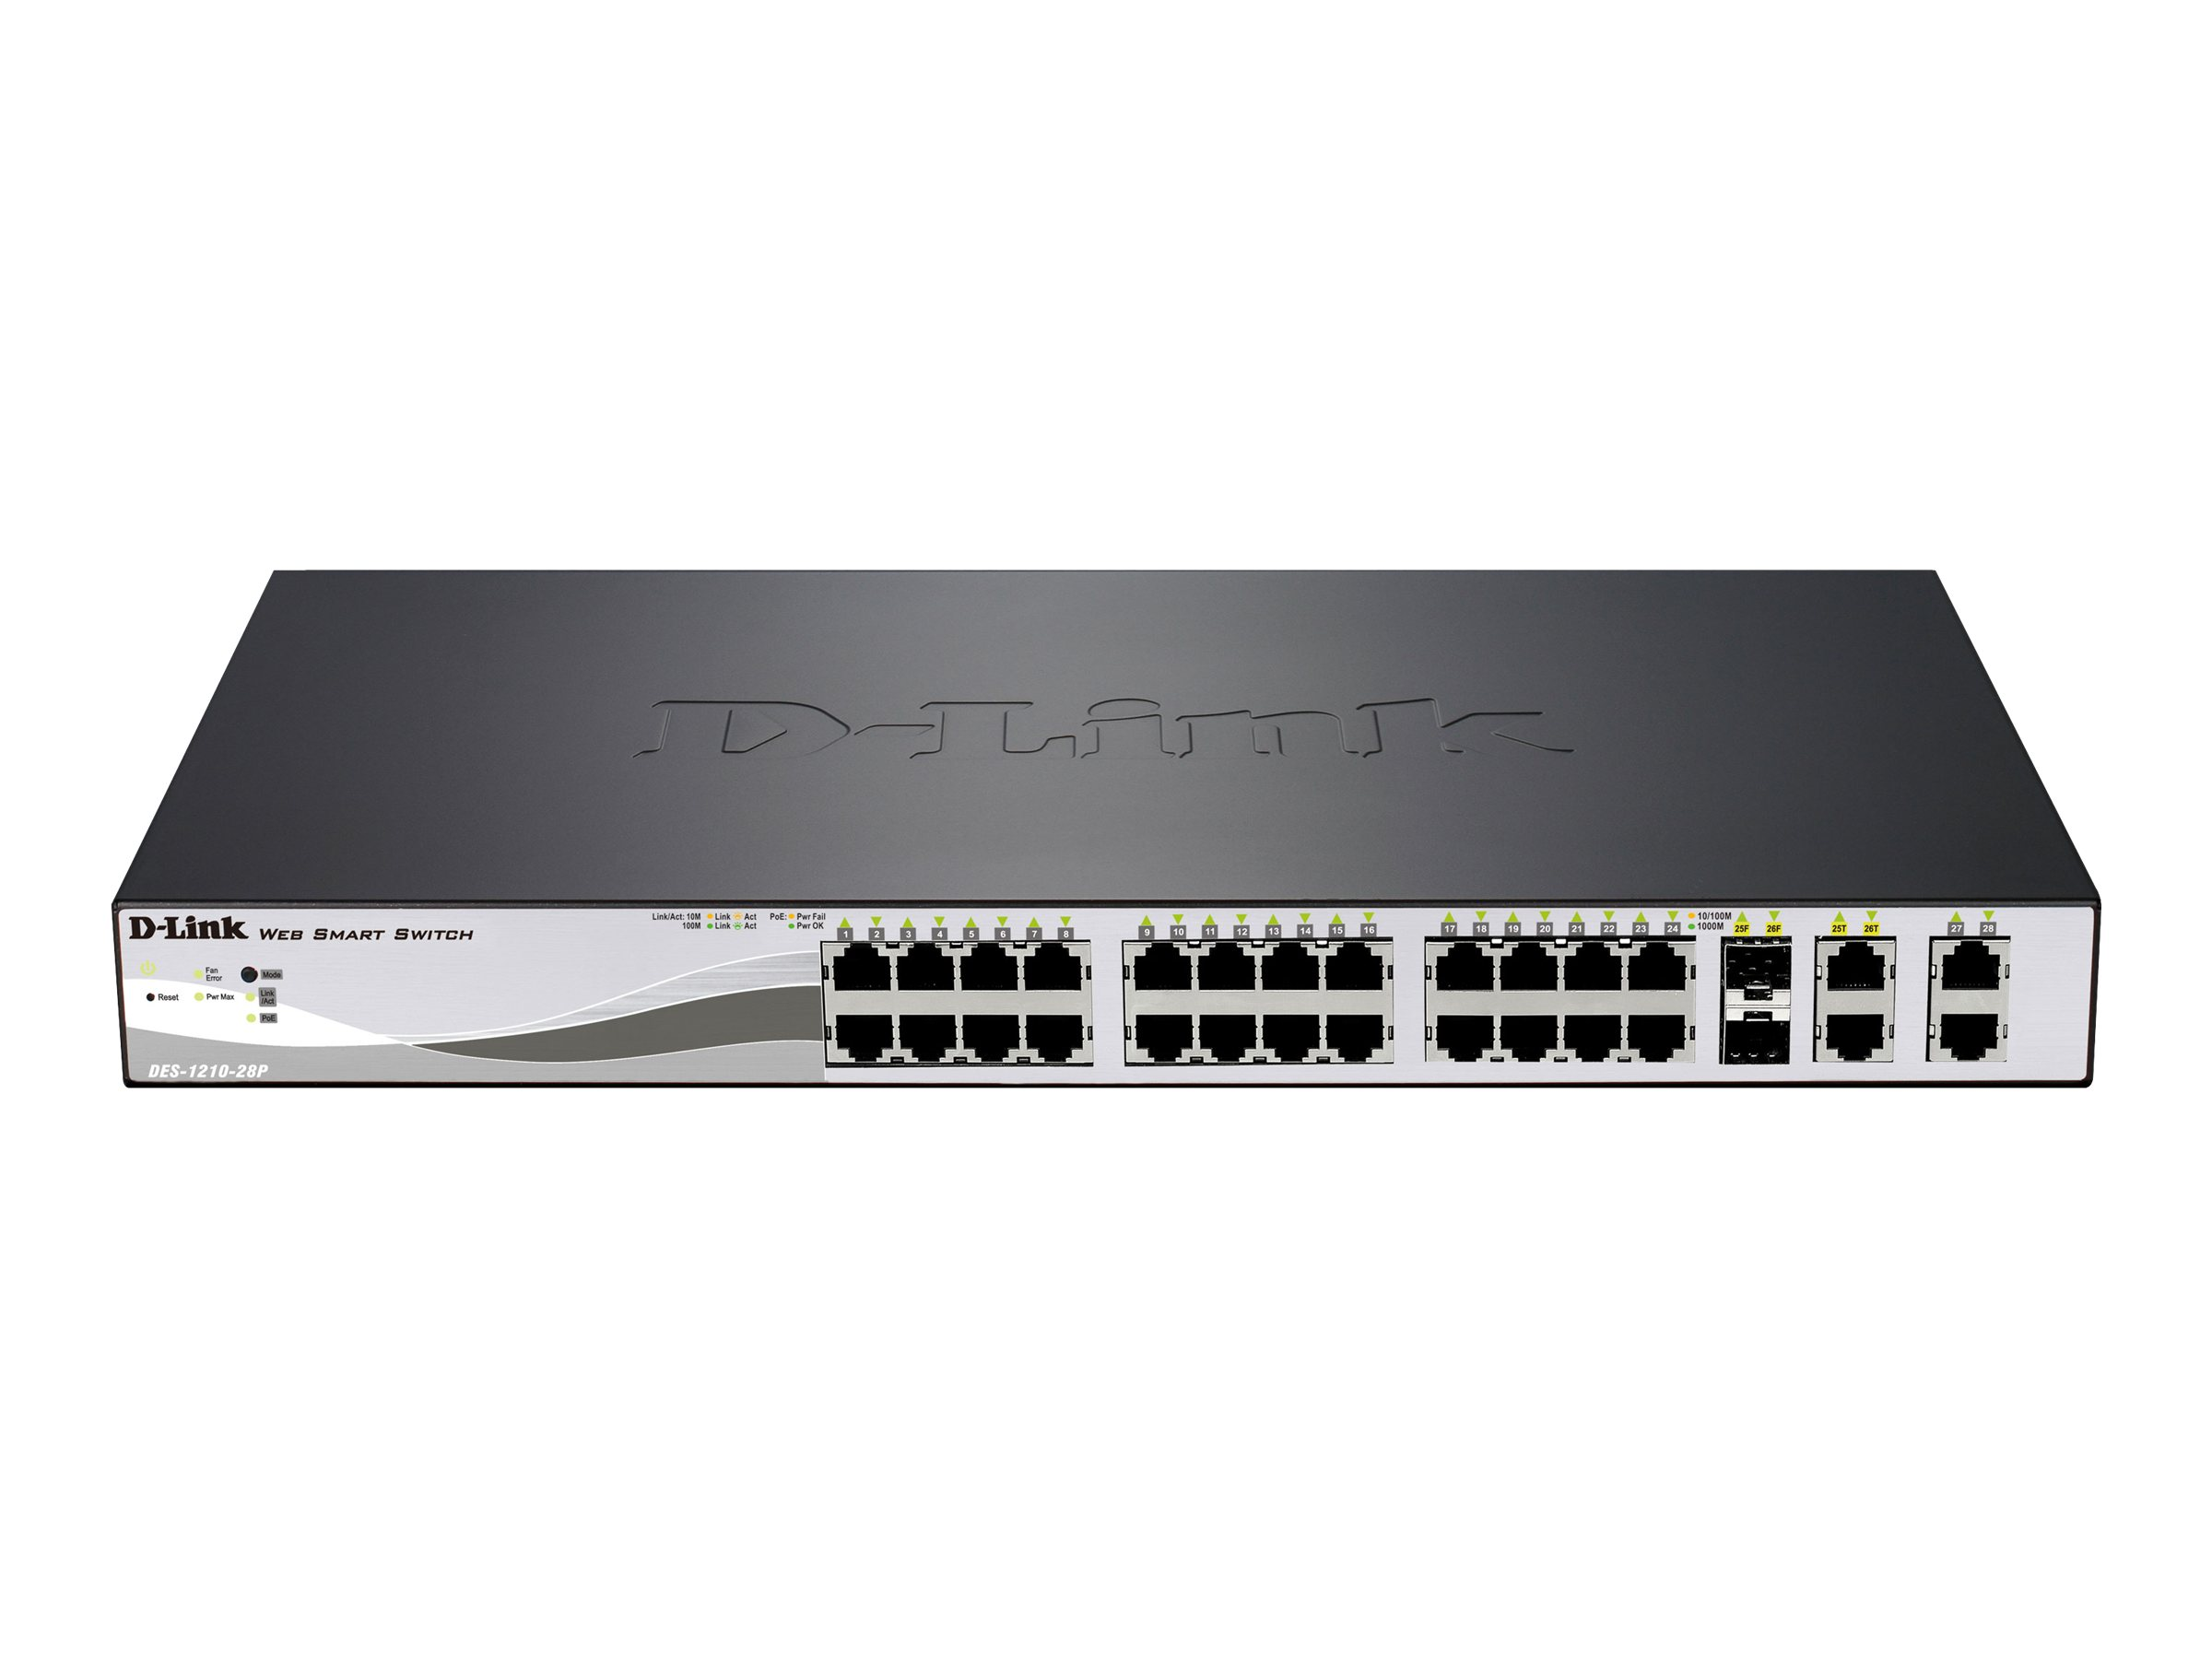 D-Link DES 1210 - switch - 24 ports - managed